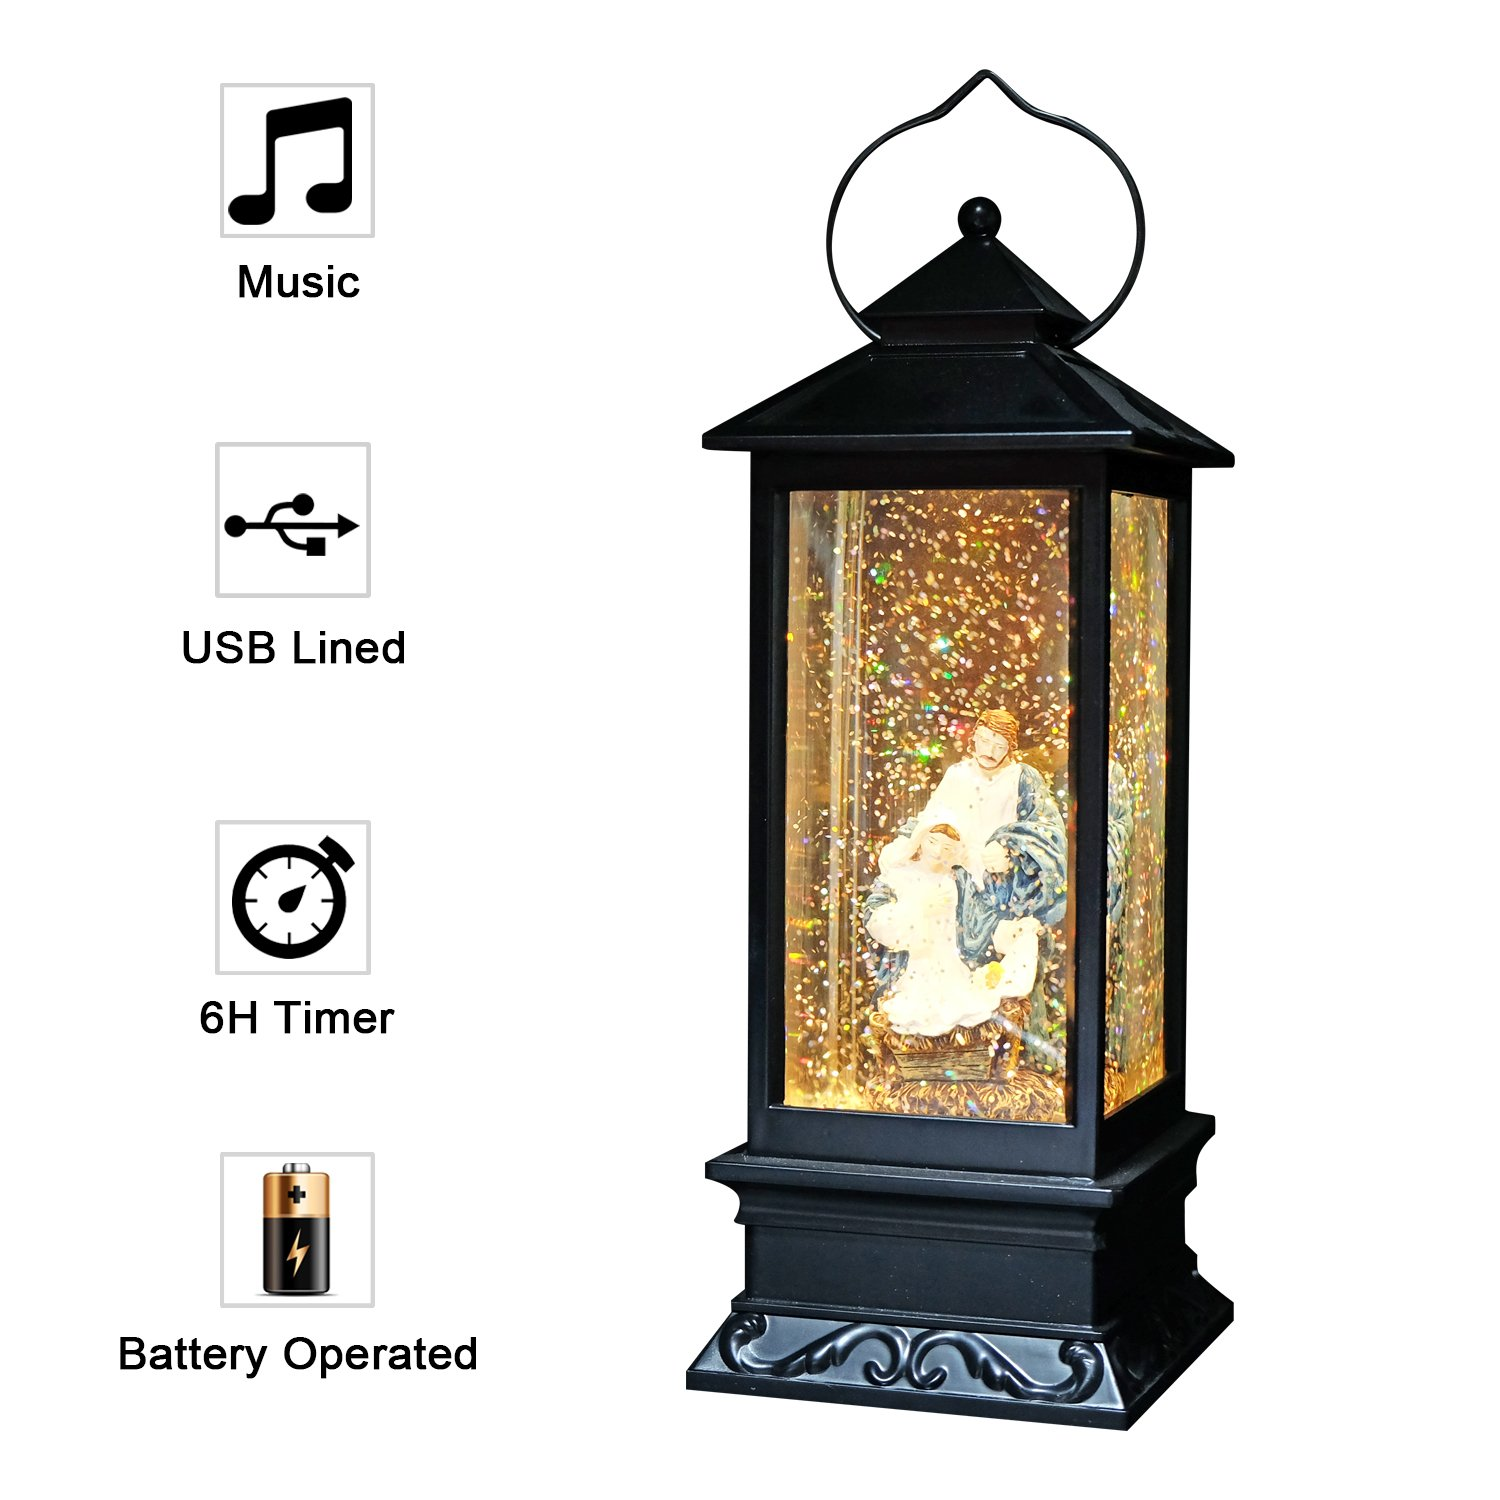 Eldnacele Battery Operated Plug-in Musical